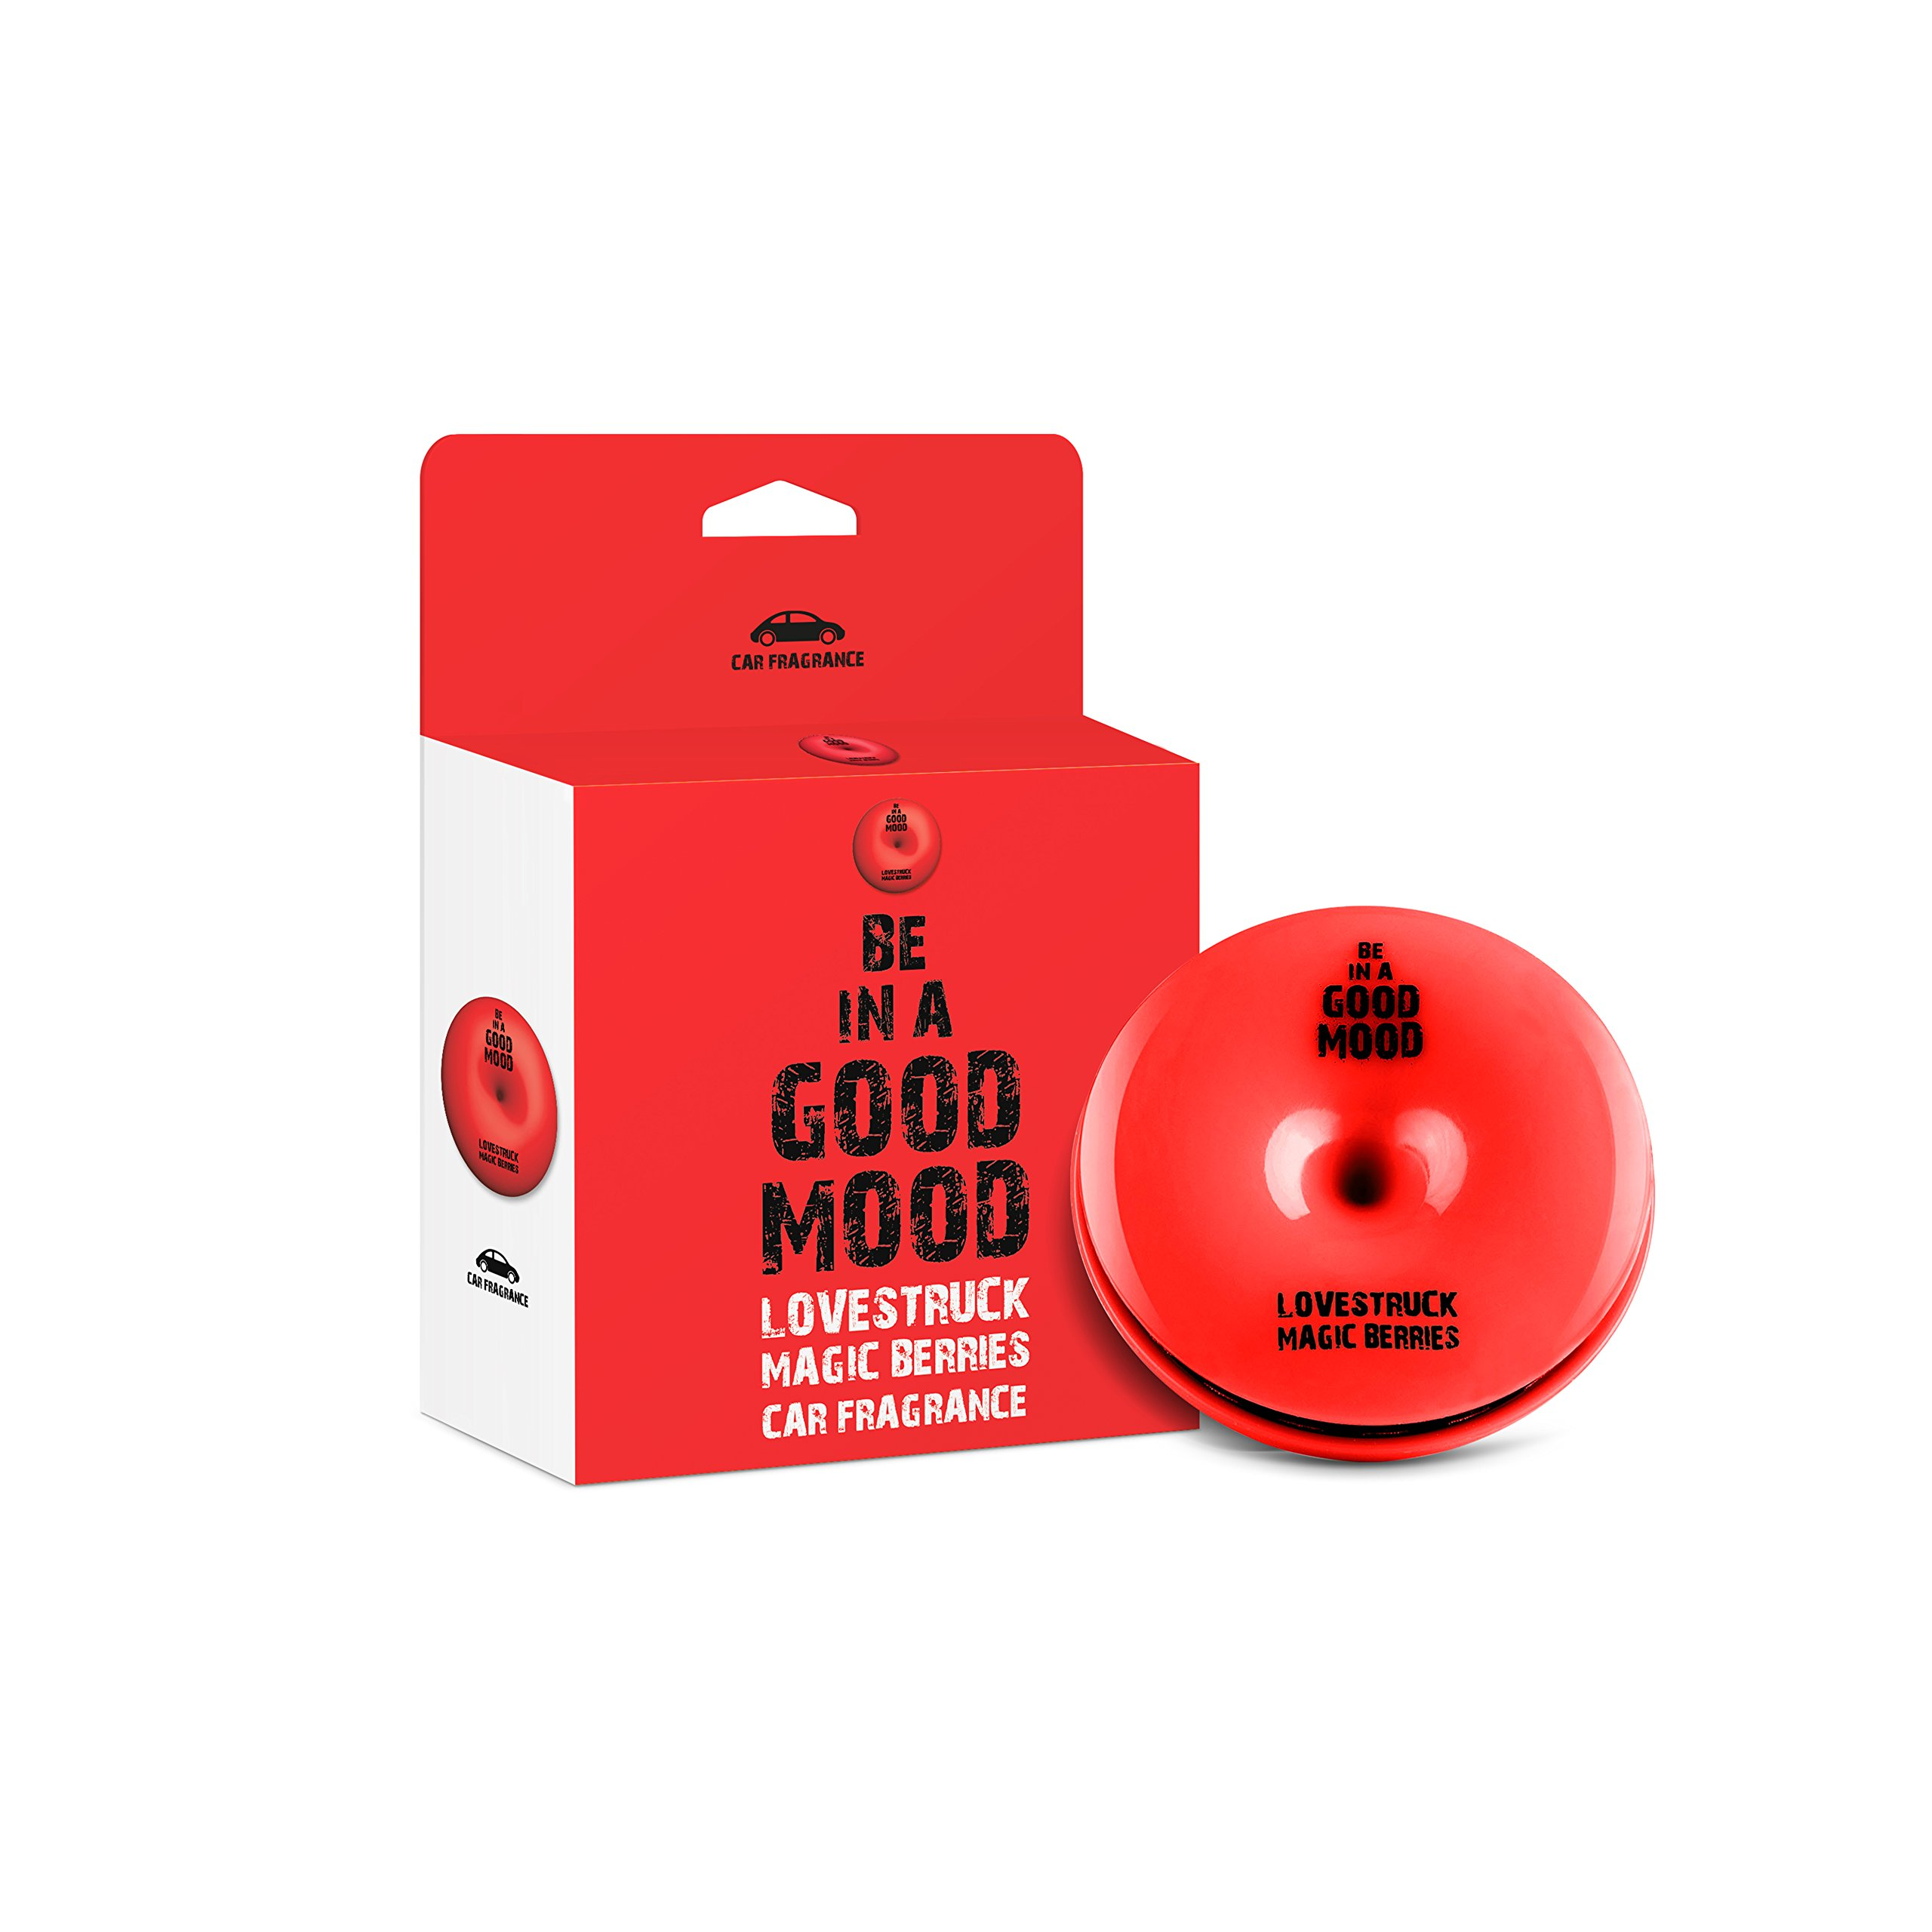 Be in a Good Mood Car Fragrances   Essential Oils   Car Air Freshener with Easy-to-Use Air Vent Diffuser   Boost Your Mood & Eliminate Unpleasant Odors (Magic Berries)